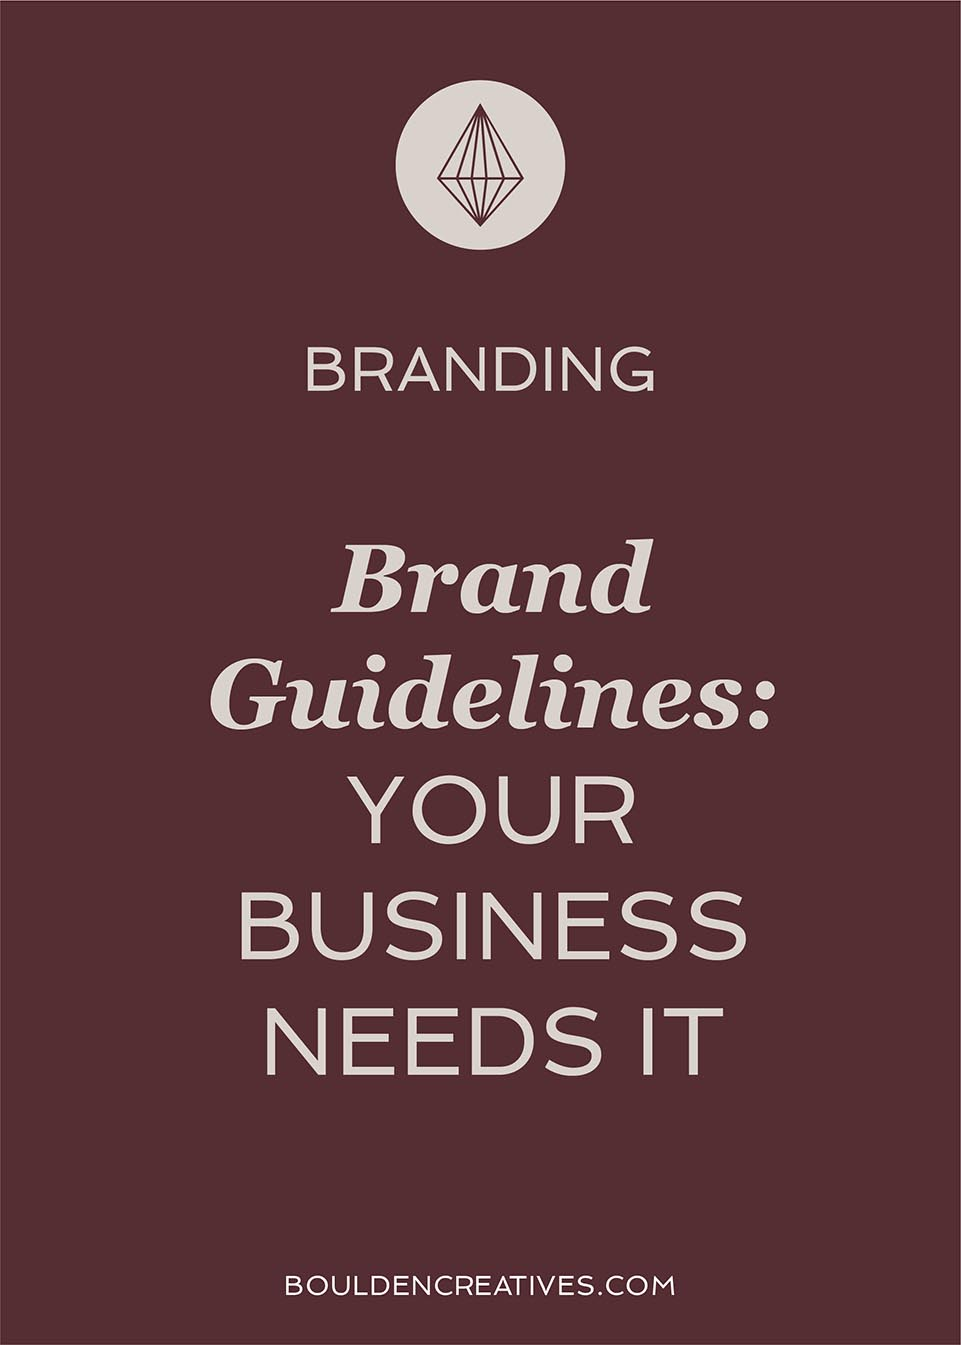 Brand Guidelines: Your Business Needs It